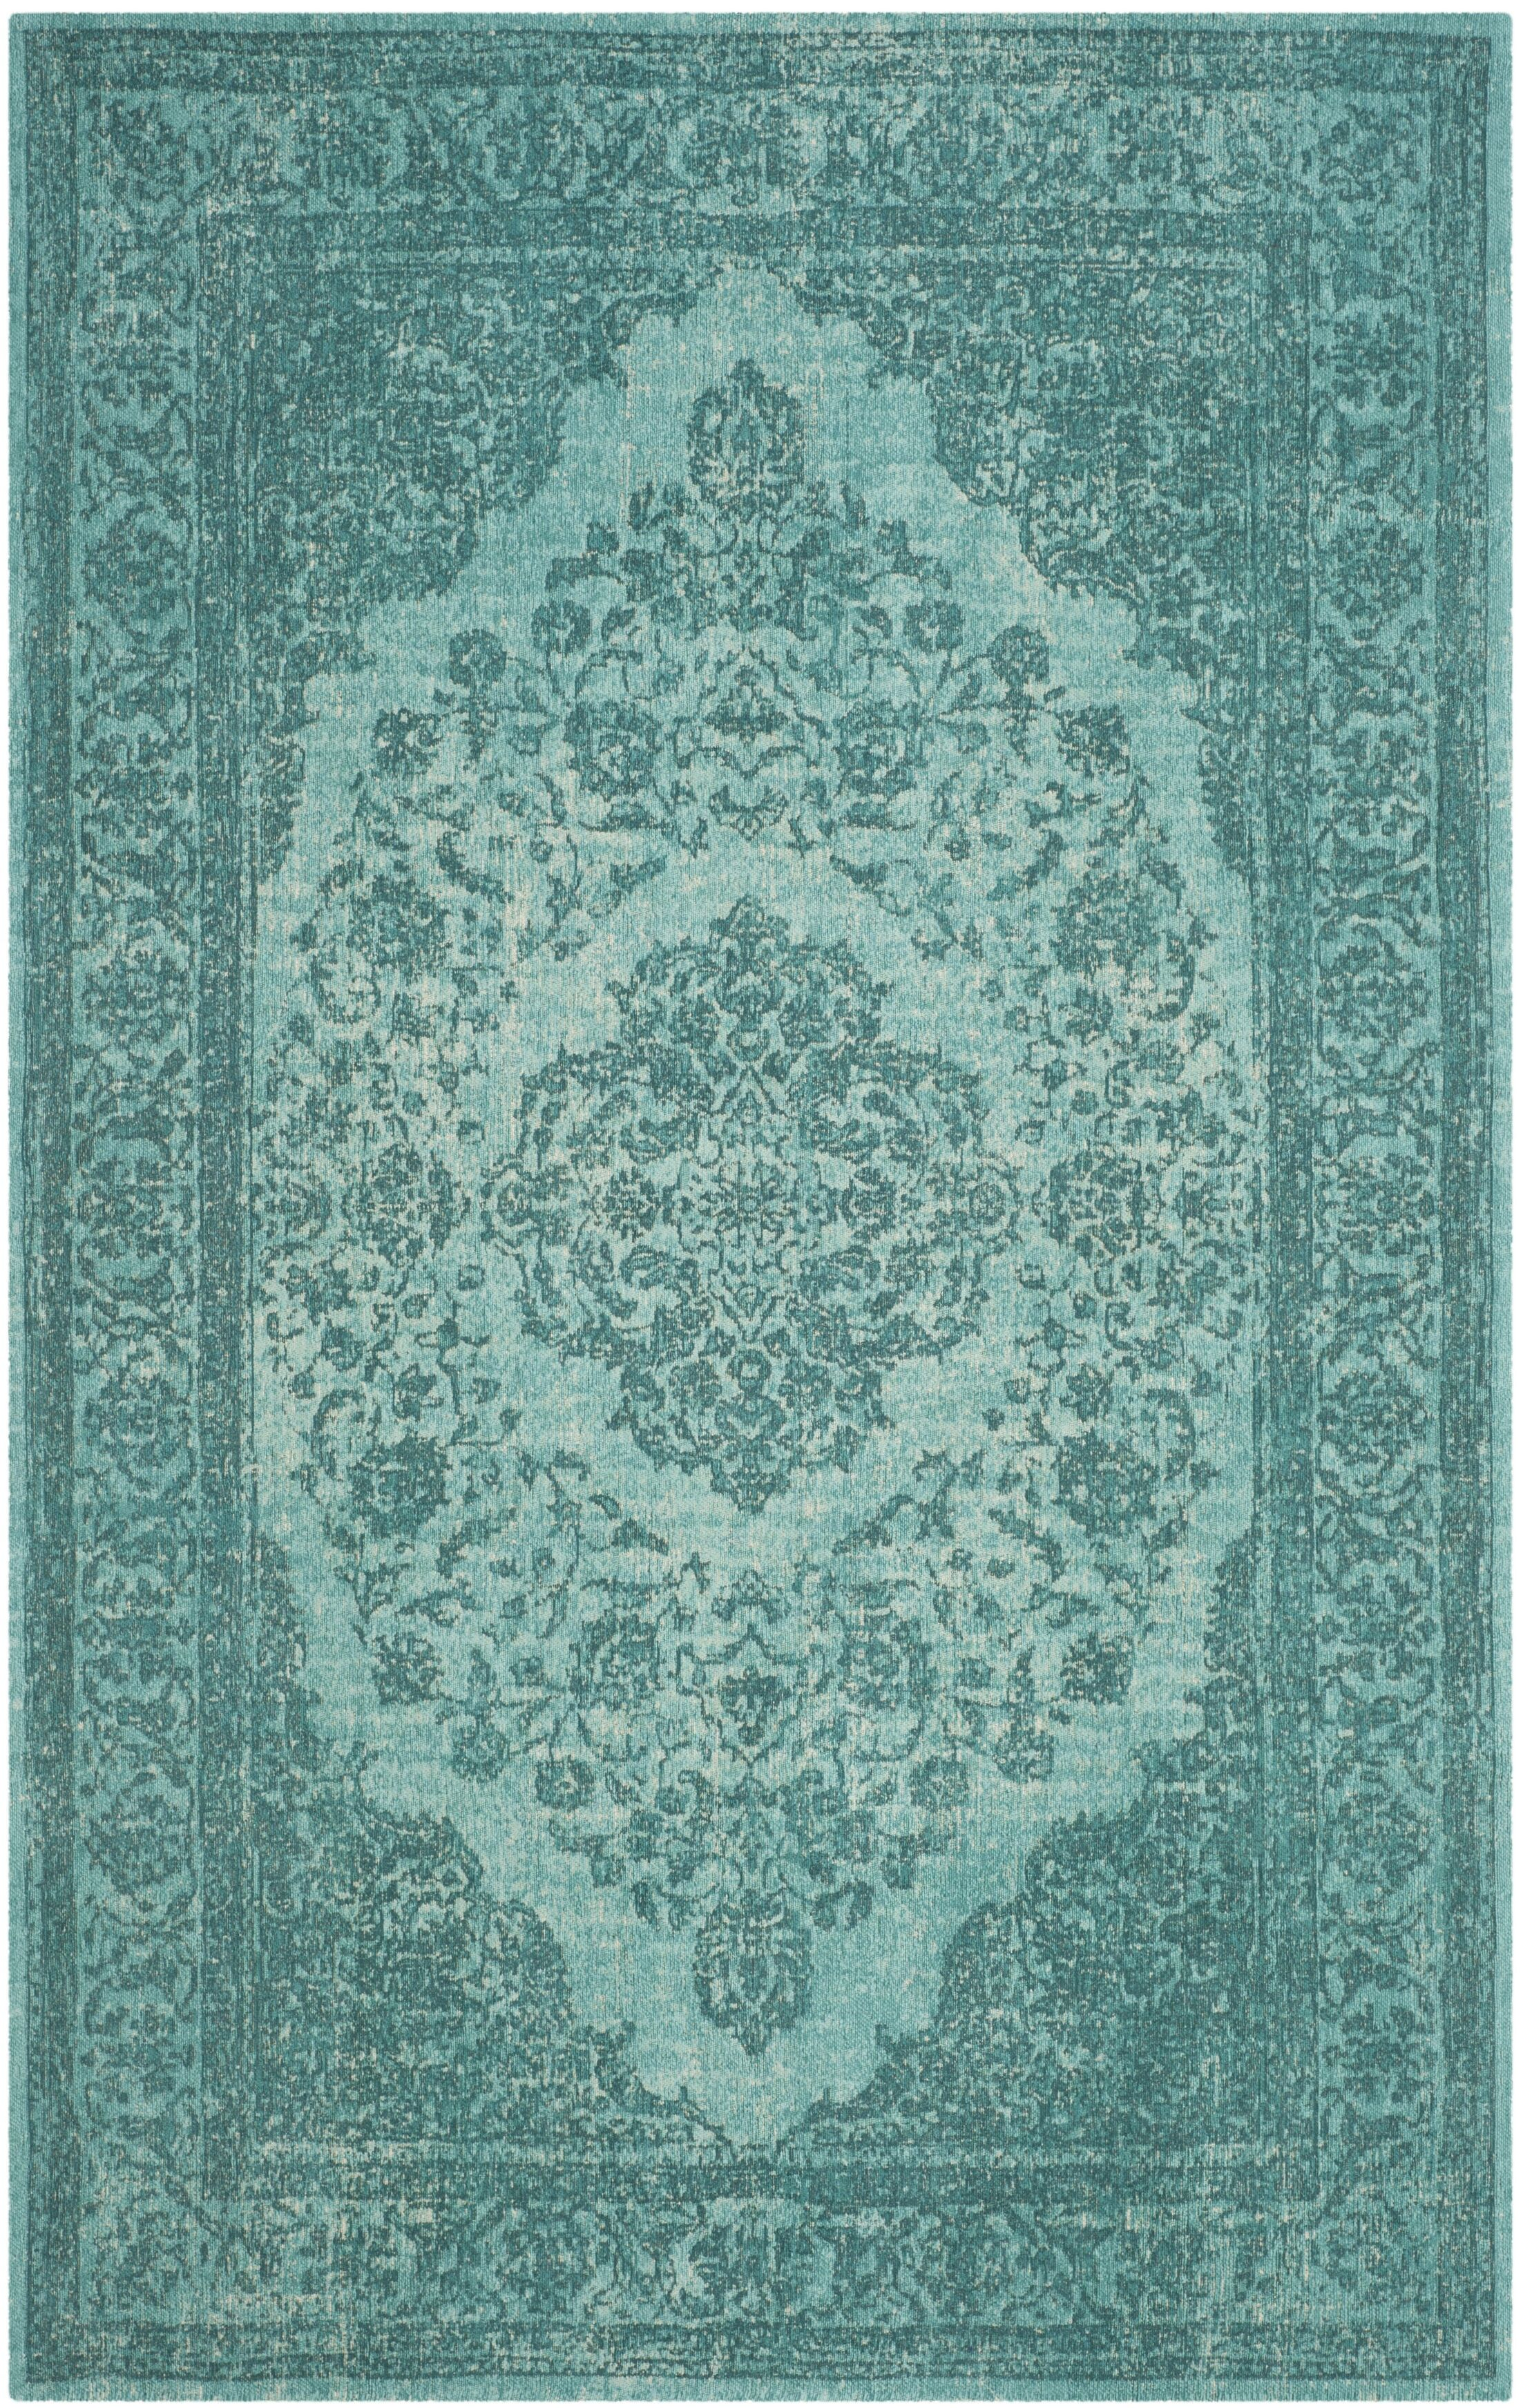 Middleborough Classic Vintage Aqua Area Rug Rug Size: Runner 2'4